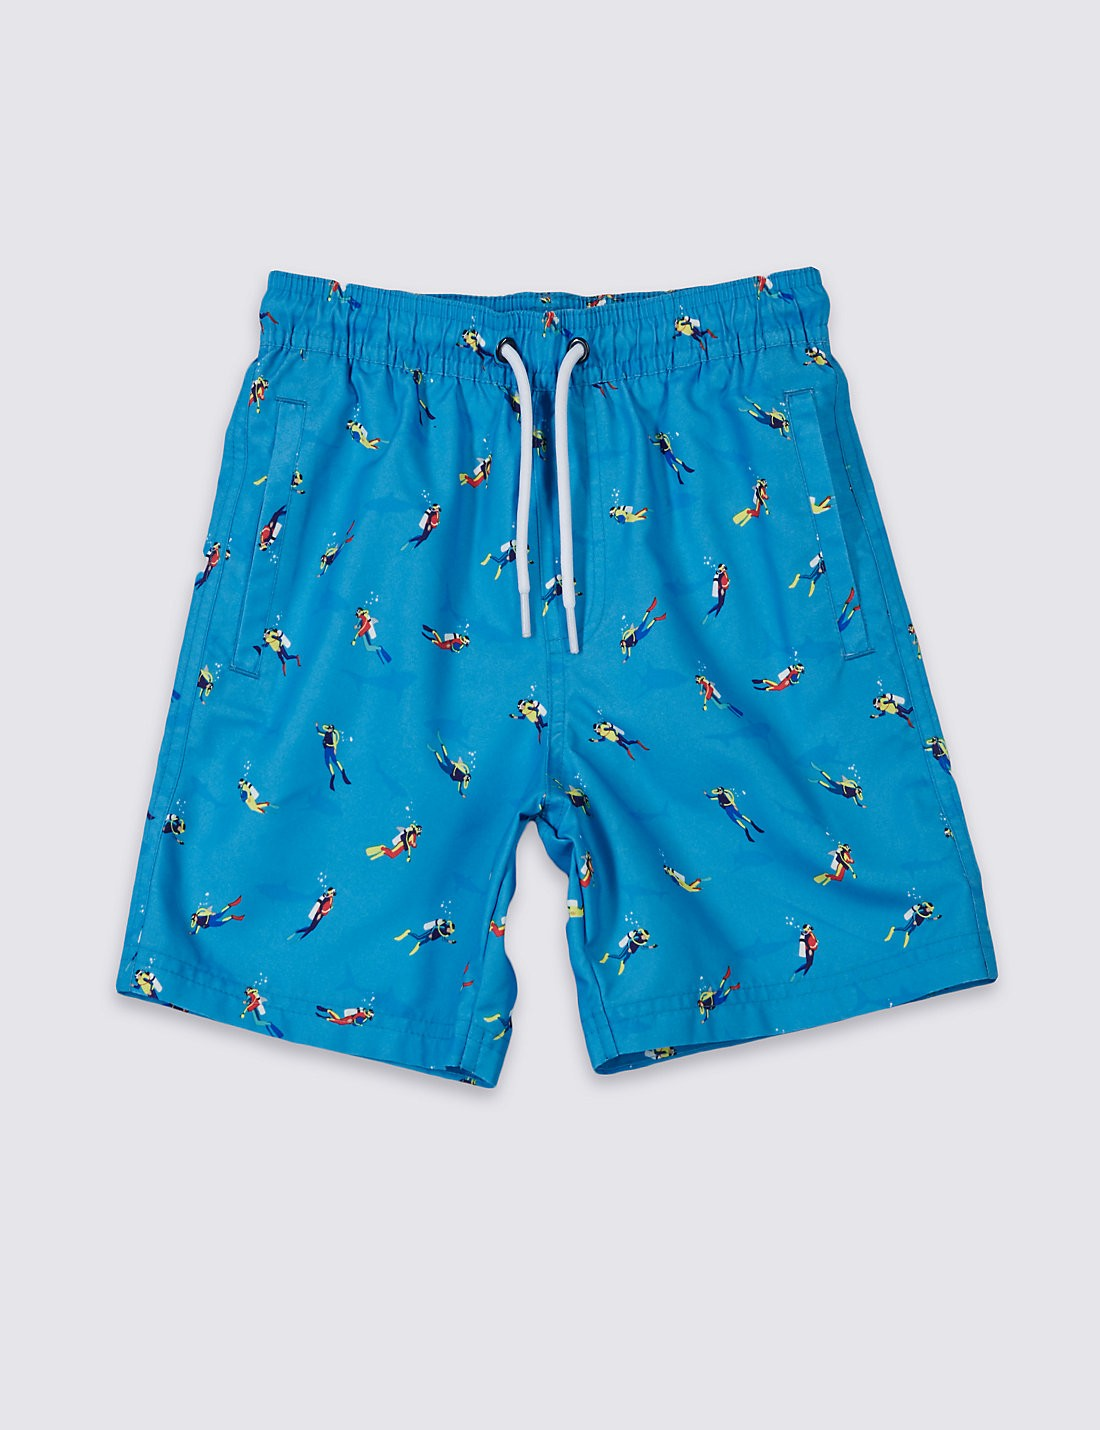 Electric Blue Boys Swimming Trunks